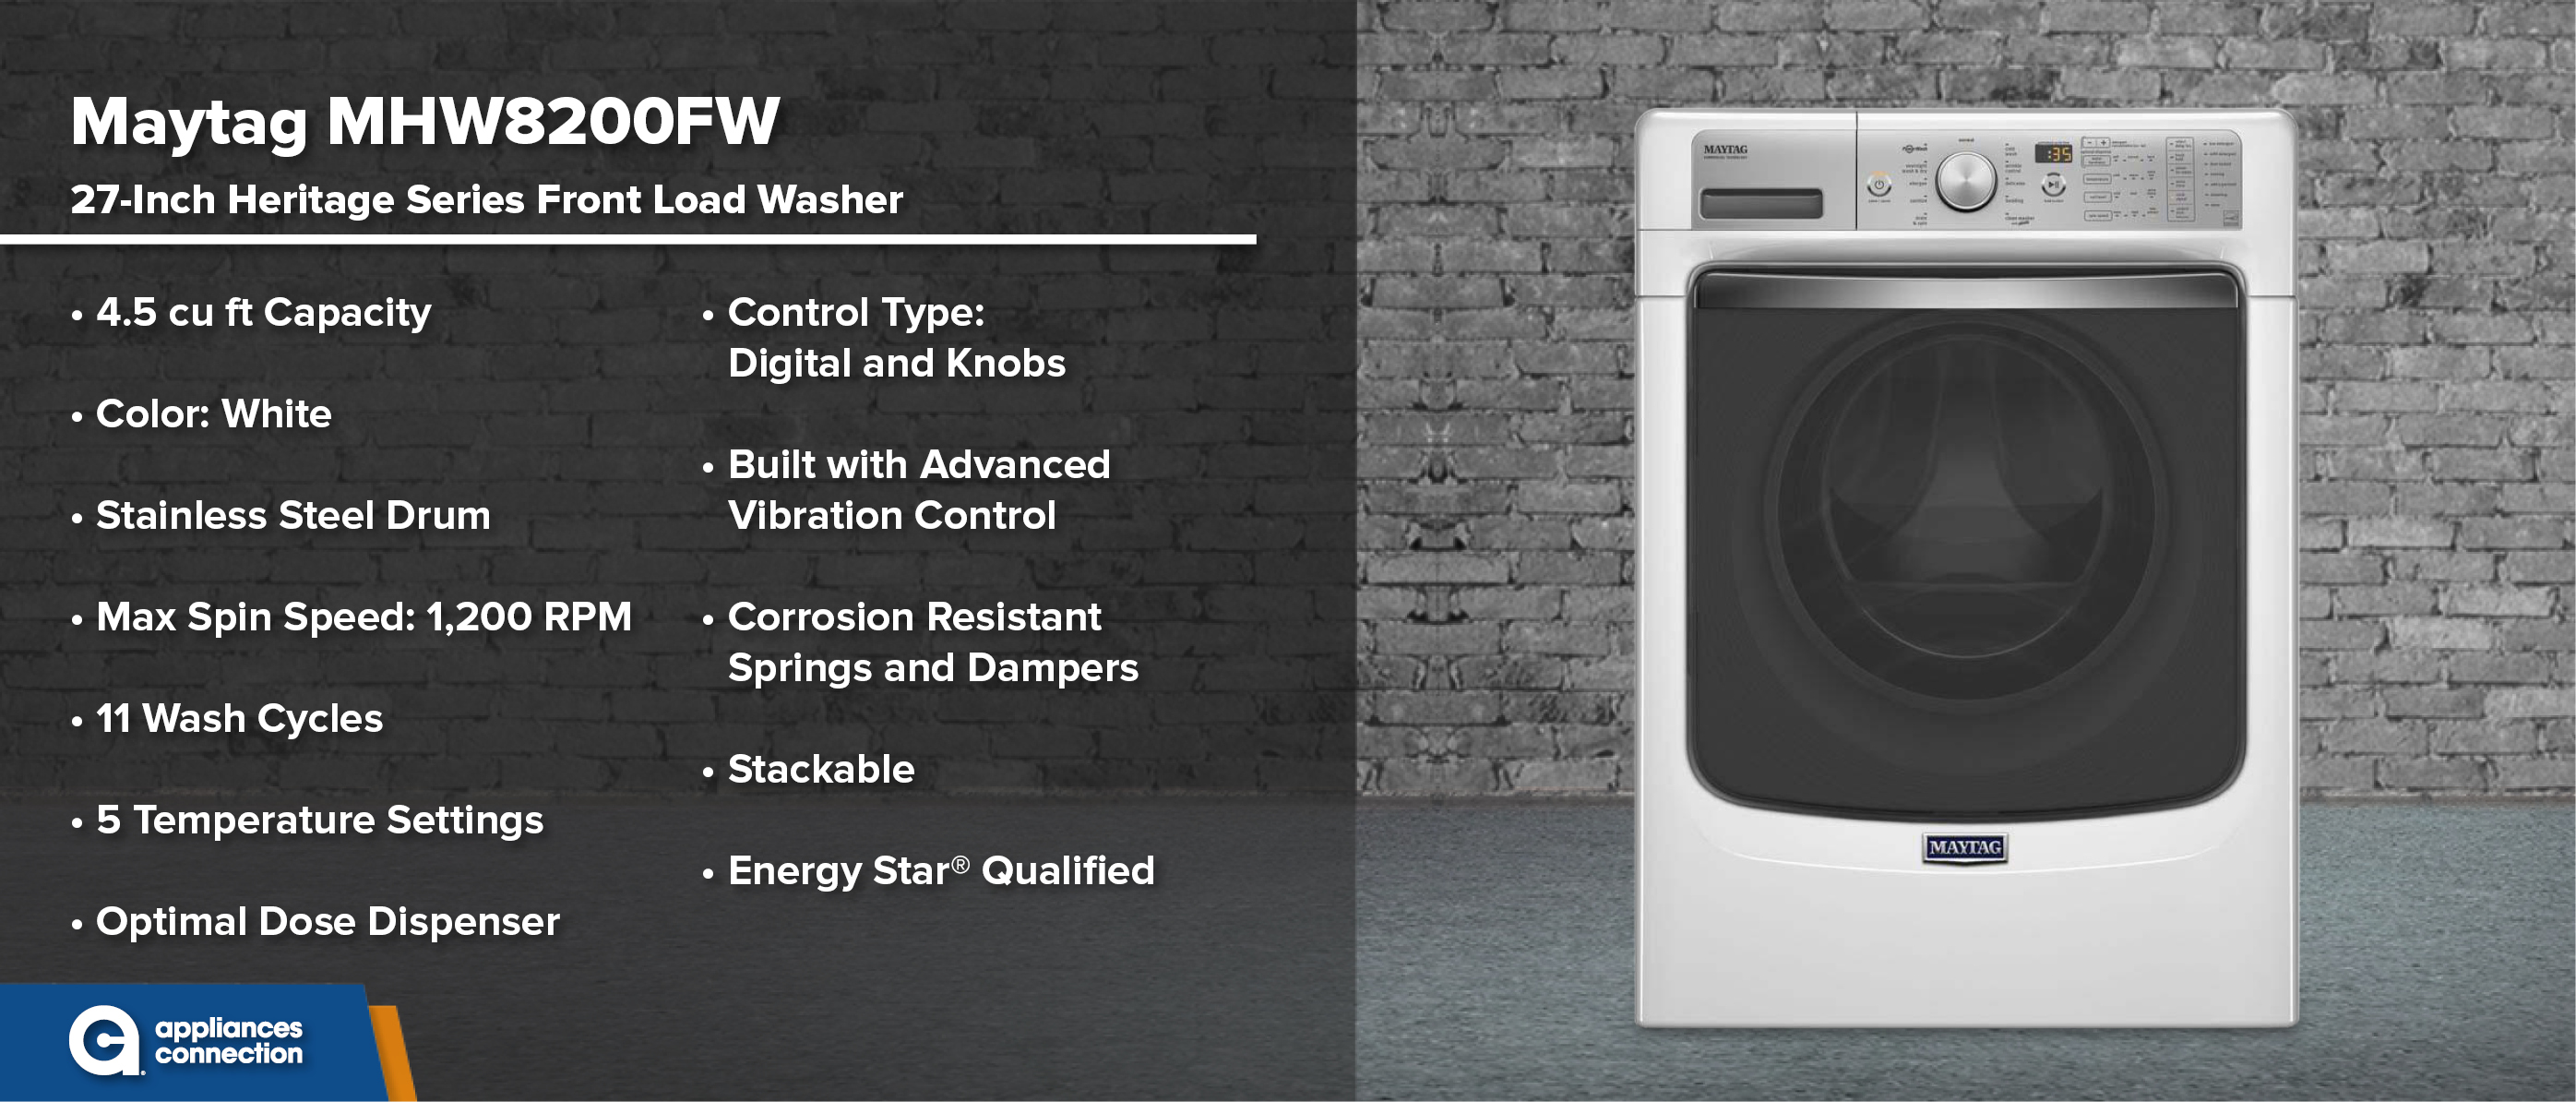 Maytag MHW8200FW 27-Inch Front Load Washer